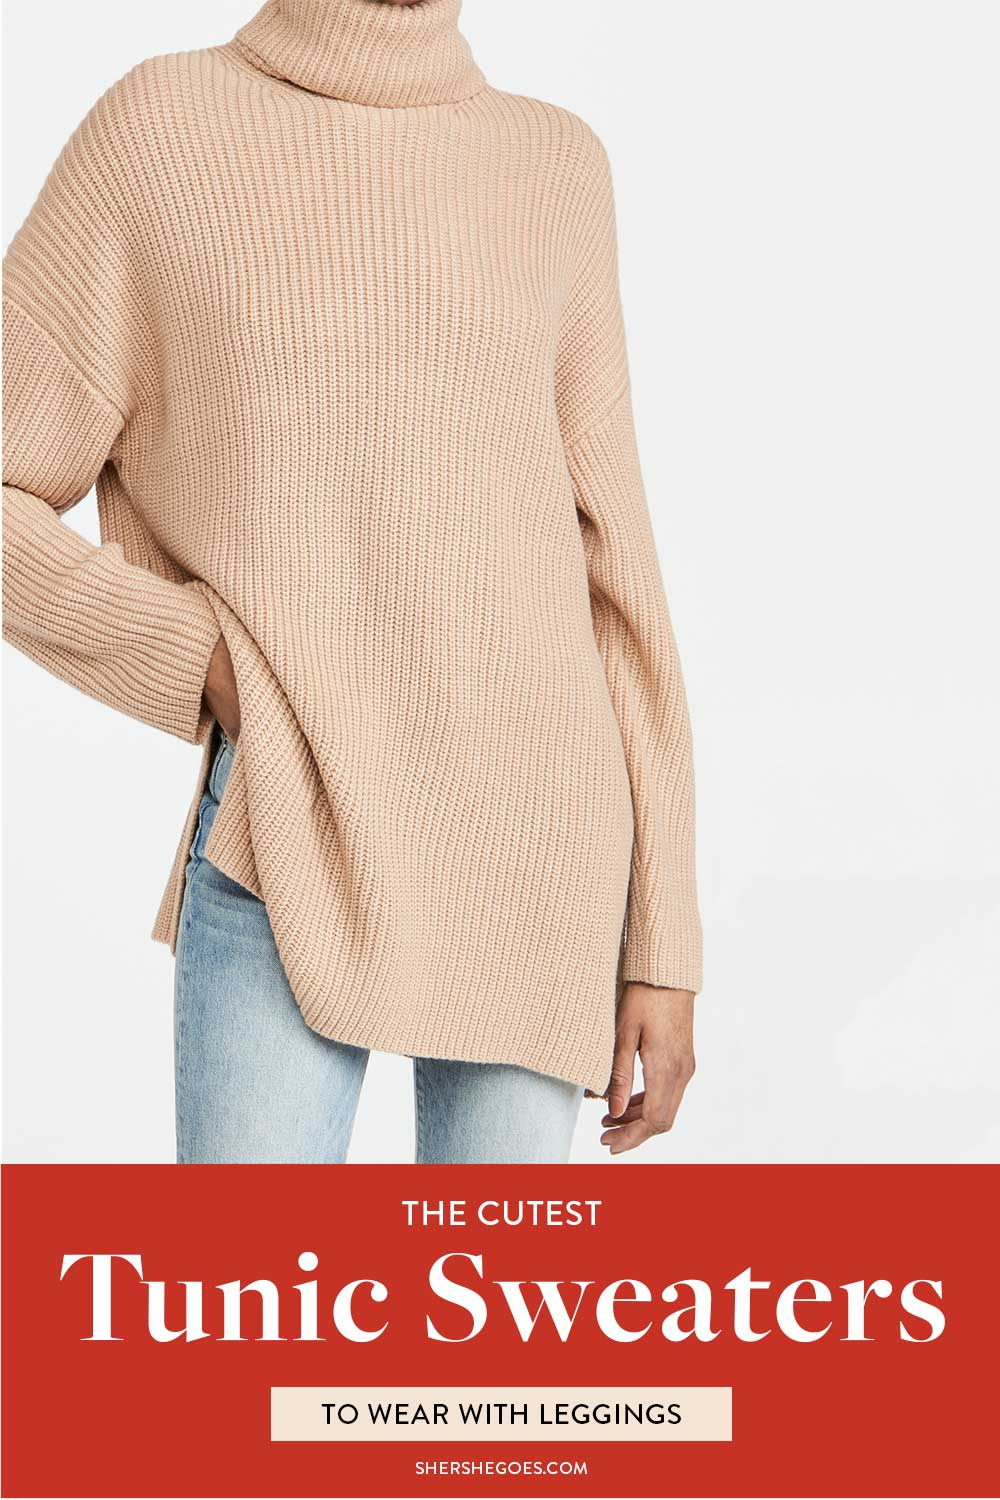 long-sweaters-to-wear-with-leggings